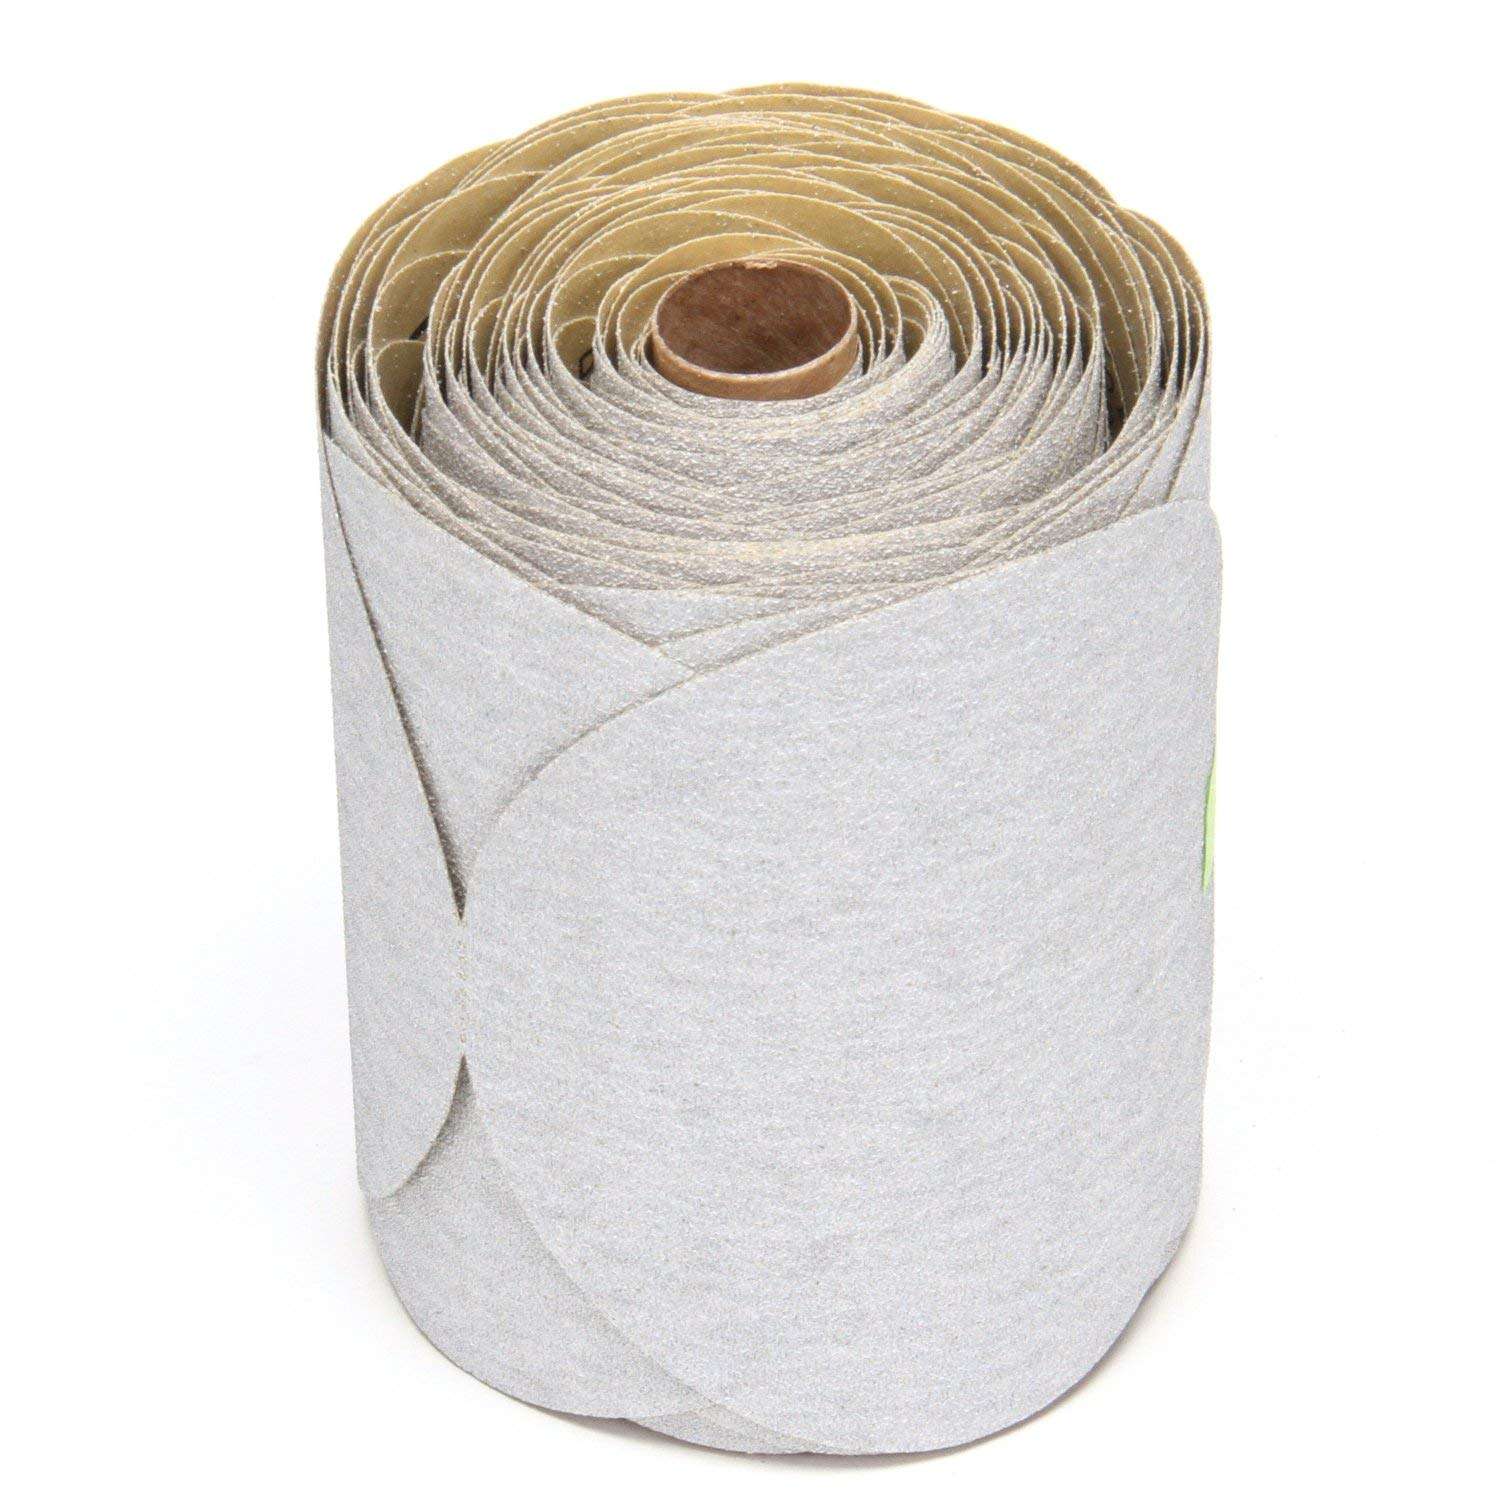 3M Stikit Paper Disc Roll Deluxe 426U 80 6 in x Sacramento Mall Die 600Z NH A-weight